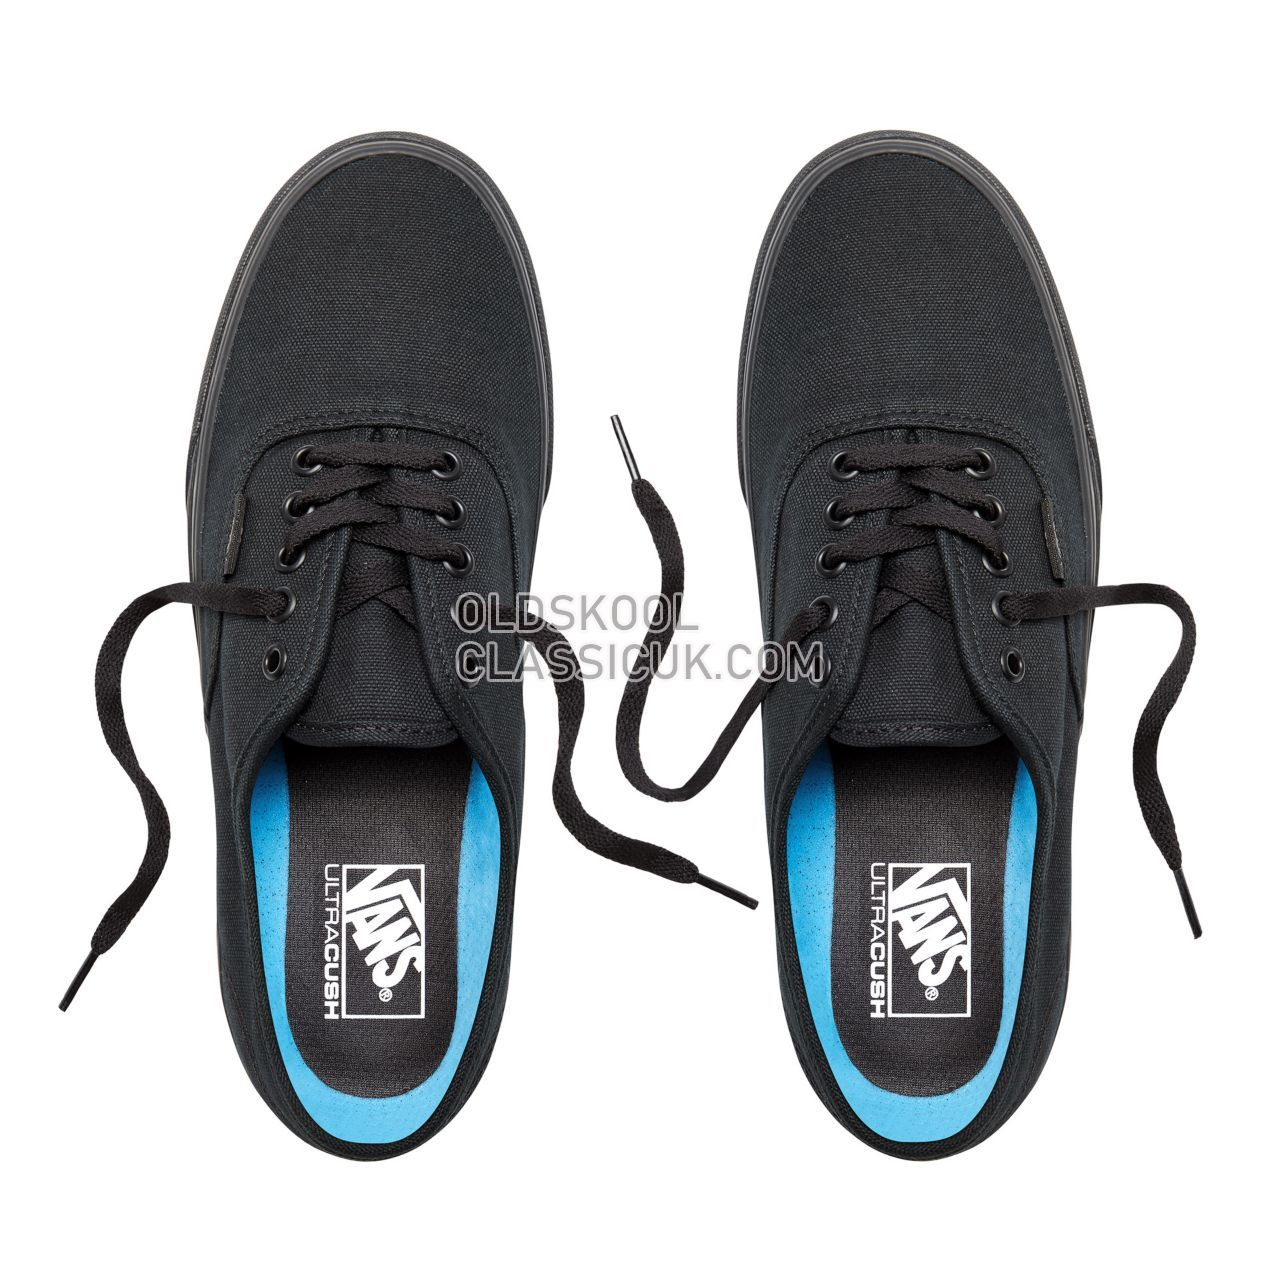 Vans Made For The Makers Authentic Sneakers Mens Black VA3MU8QBX Shoes